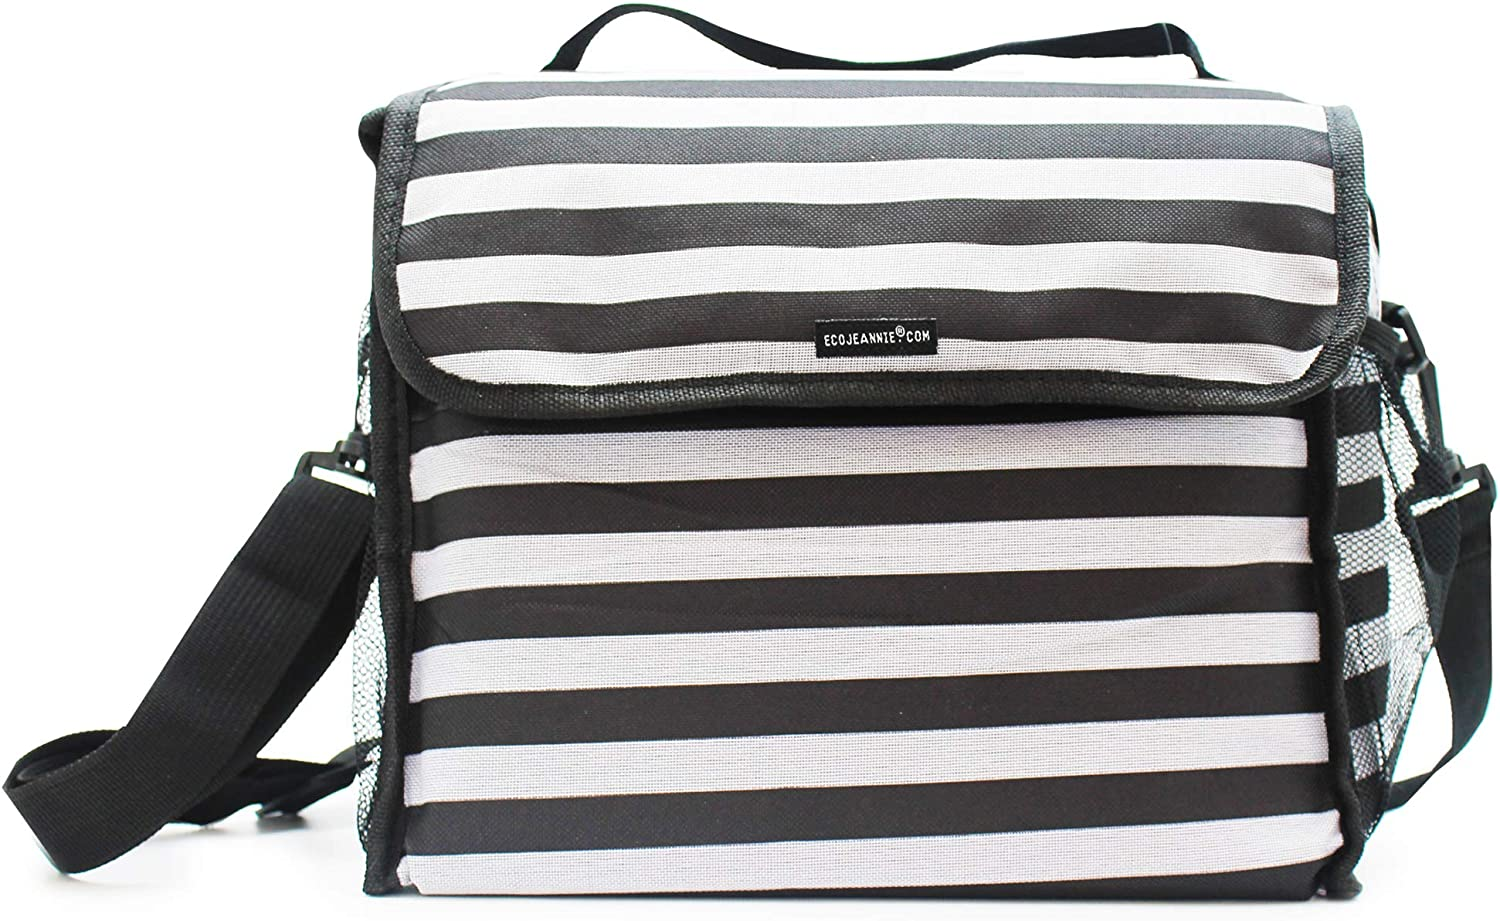 EcoJeannie Premium Large Reusable Insulated Lunch Bag for Warm or Cold Foods Cooler Tote Bag Lunch Organizer with Adjustable Shoulder Strap